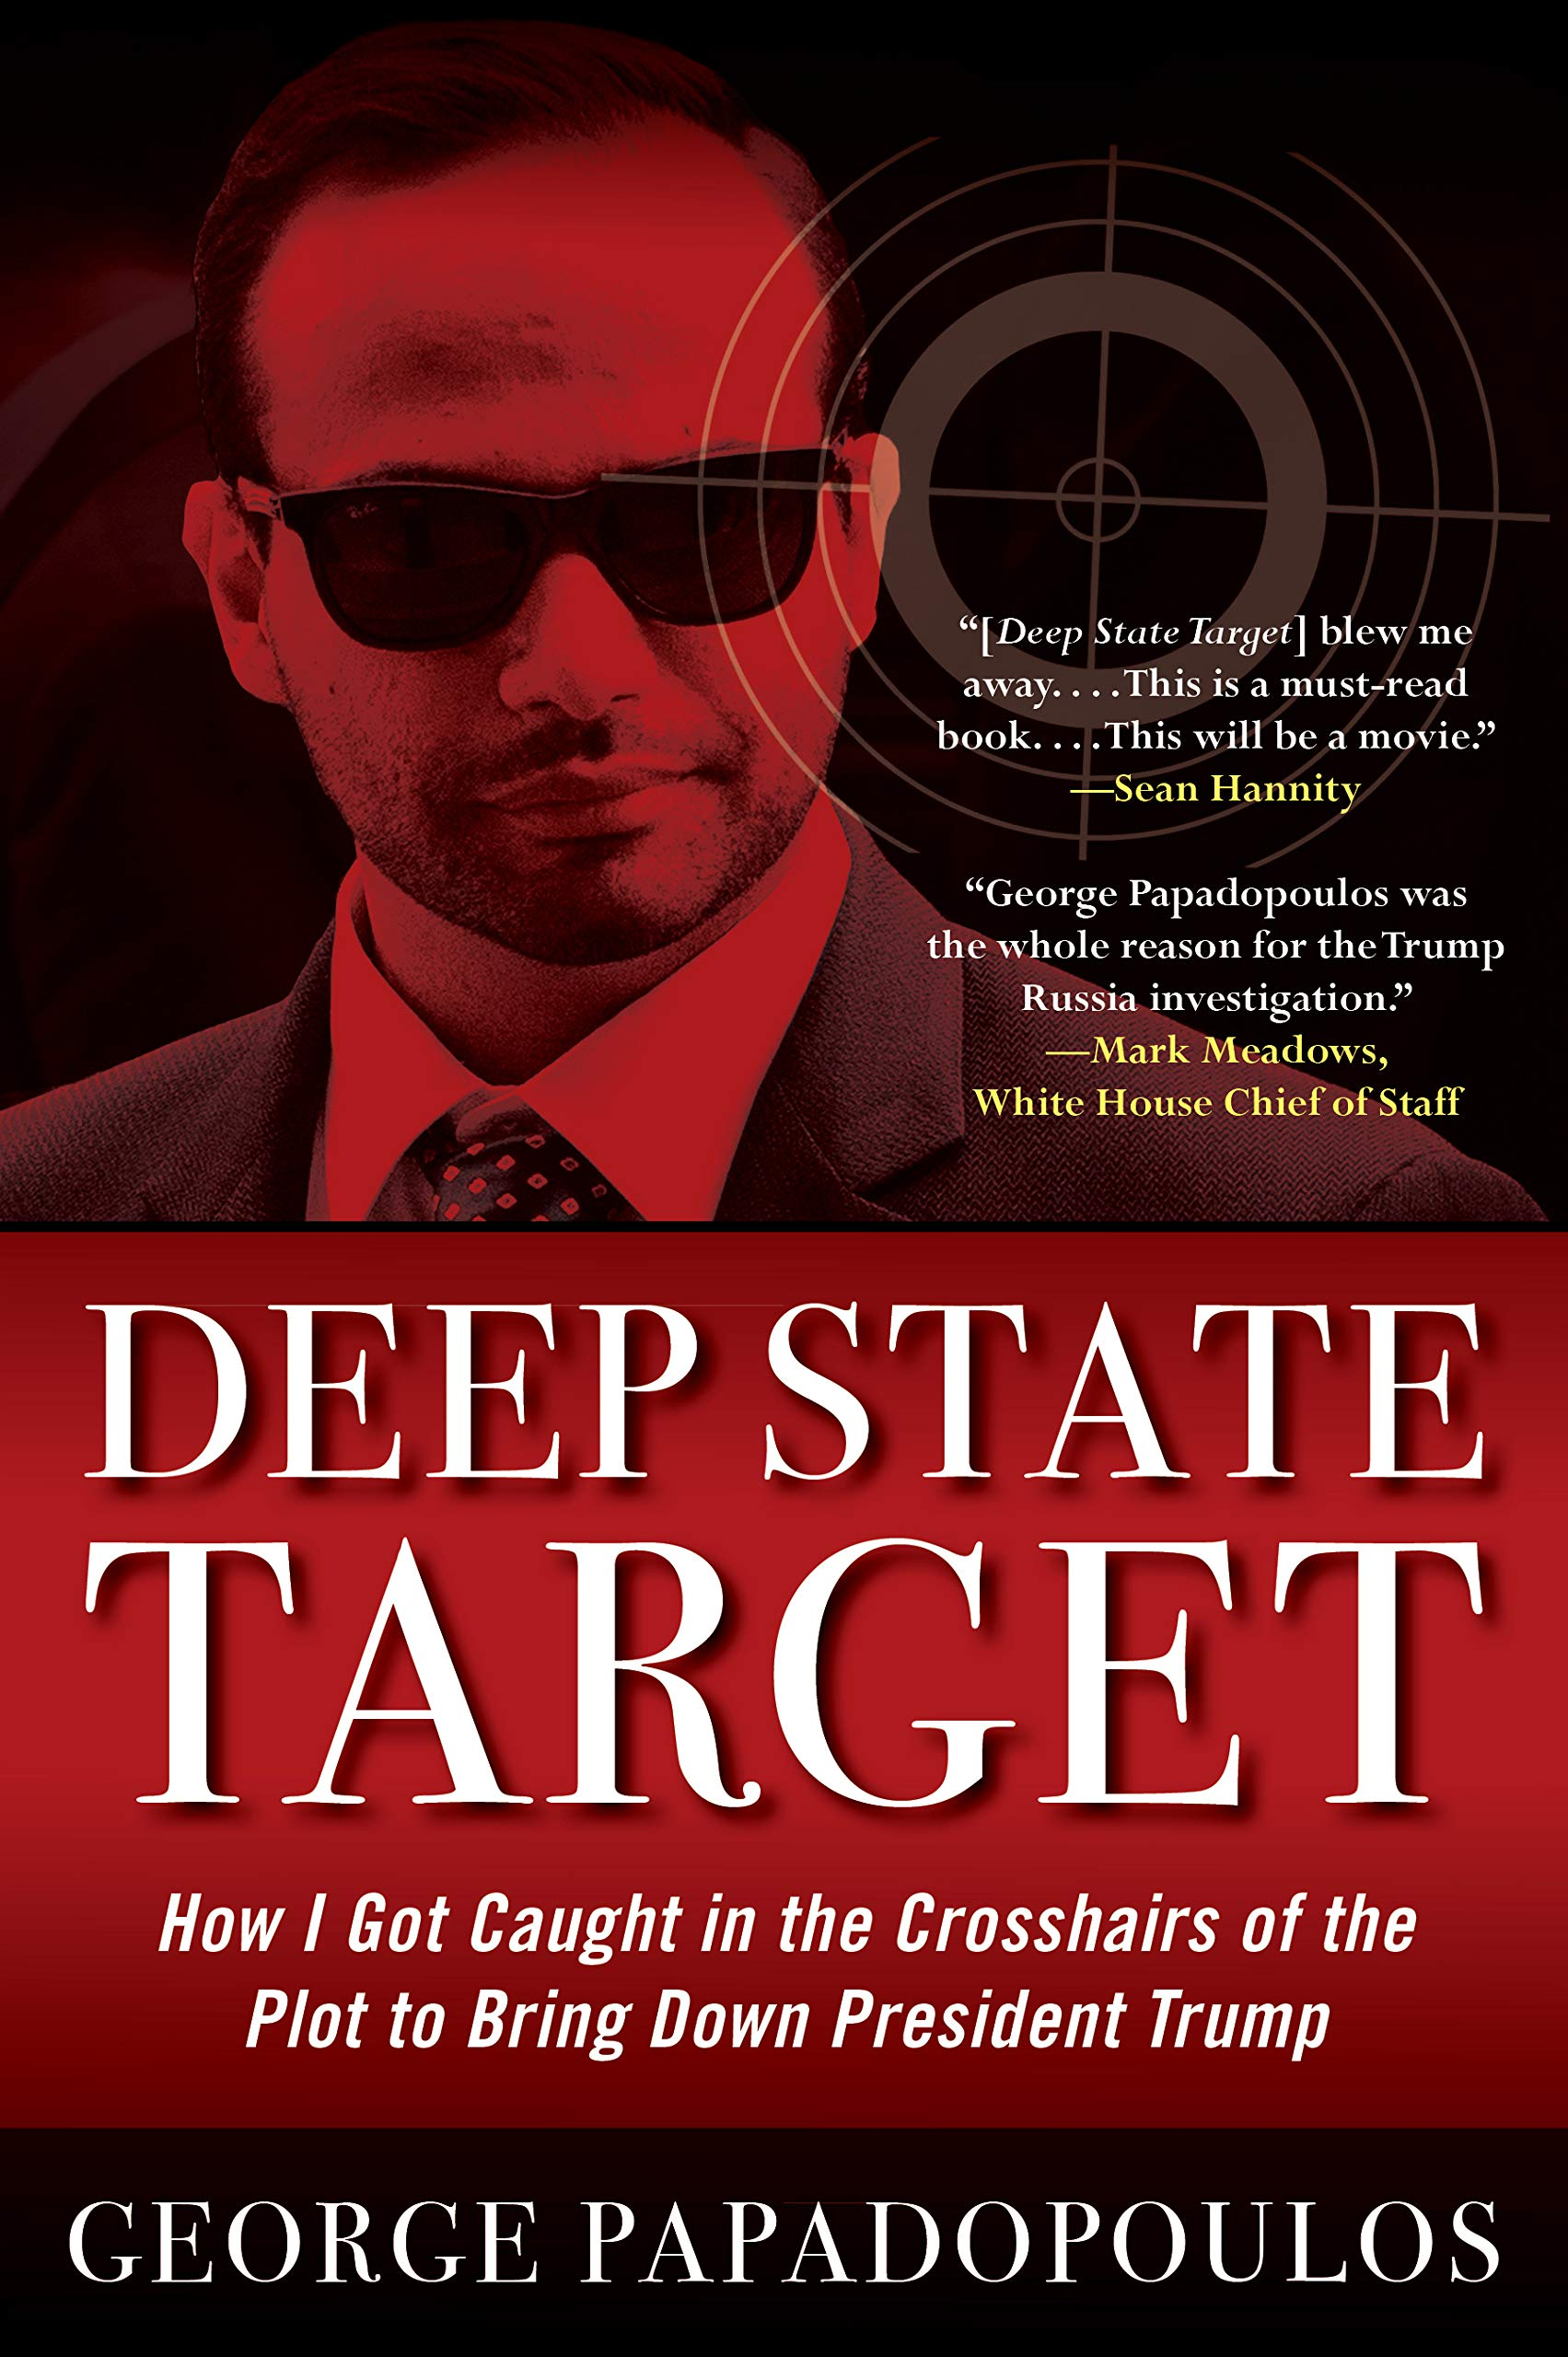 Deep State Target: How I Got Caught within the Crosshairs of the Plot to Bring Down President Trump